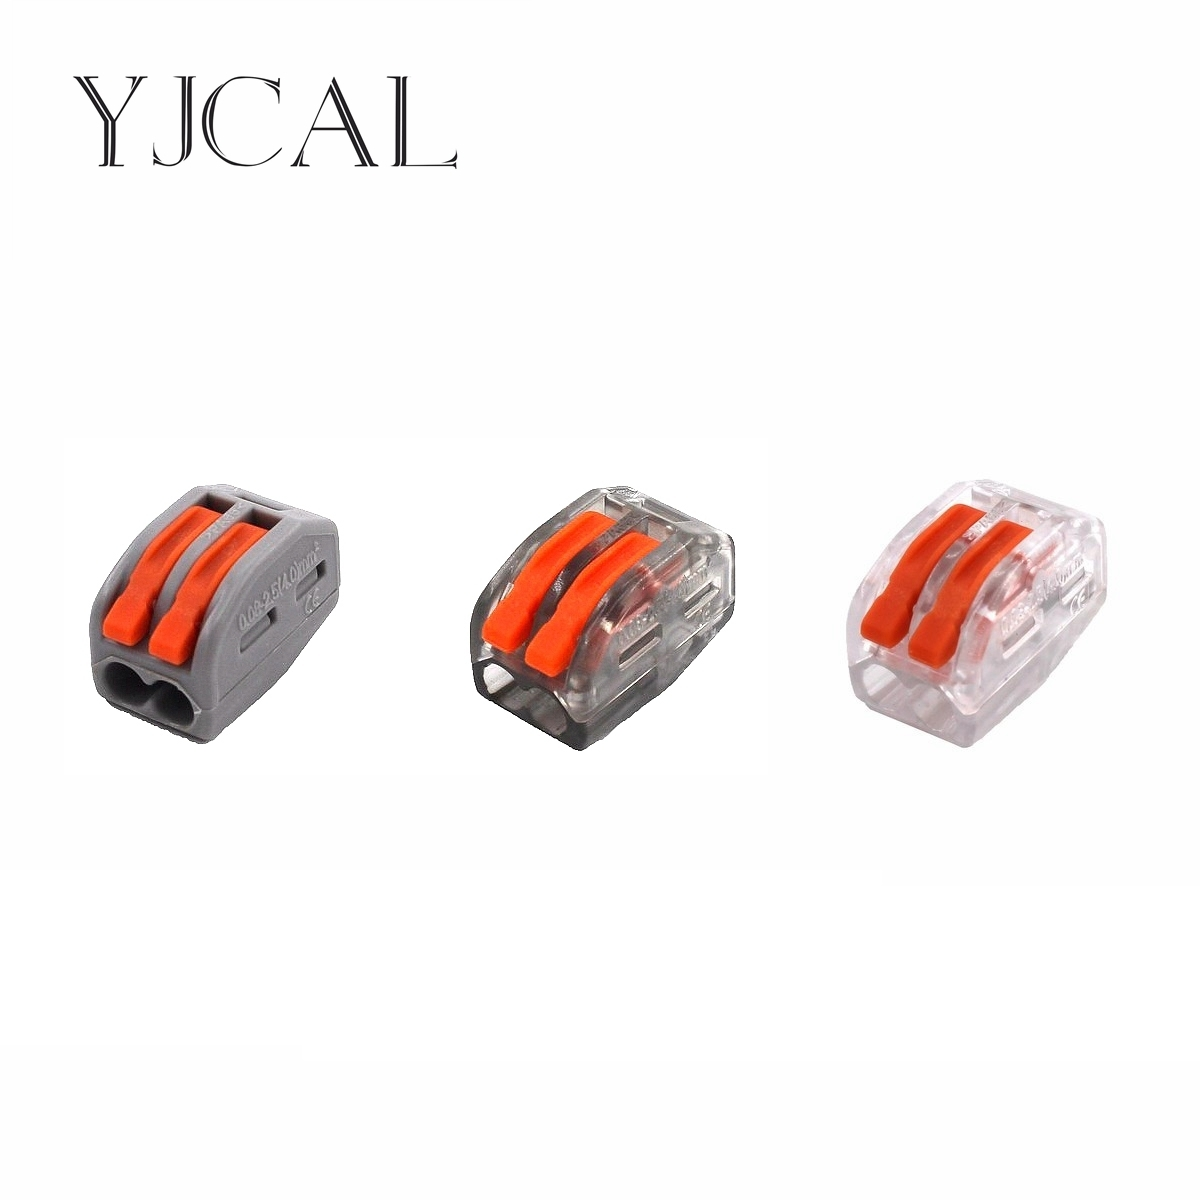 цена на Wago Type 222-412 100PCS Universal Compact Wiring Conector Terminal Block Connectors Terminator Wire Connector AWG 28-12